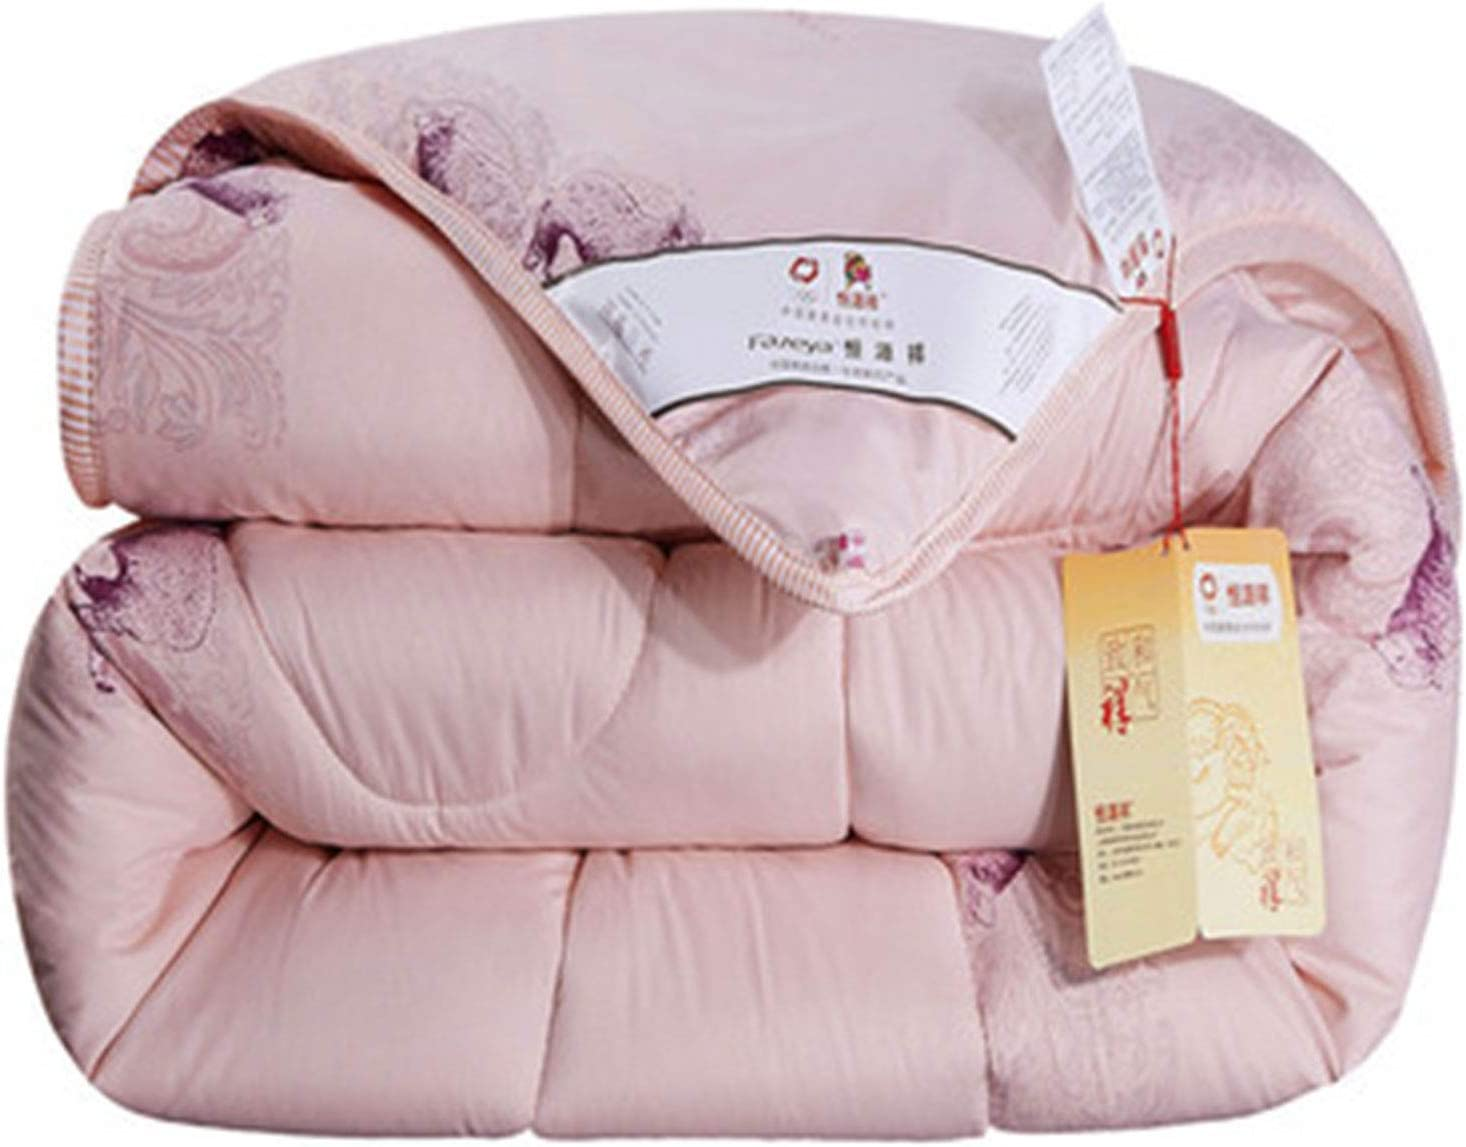 middle Winter Very popular Quilt Cashmere Cotton Pure Wool B 100% Ranking TOP13 Duvet